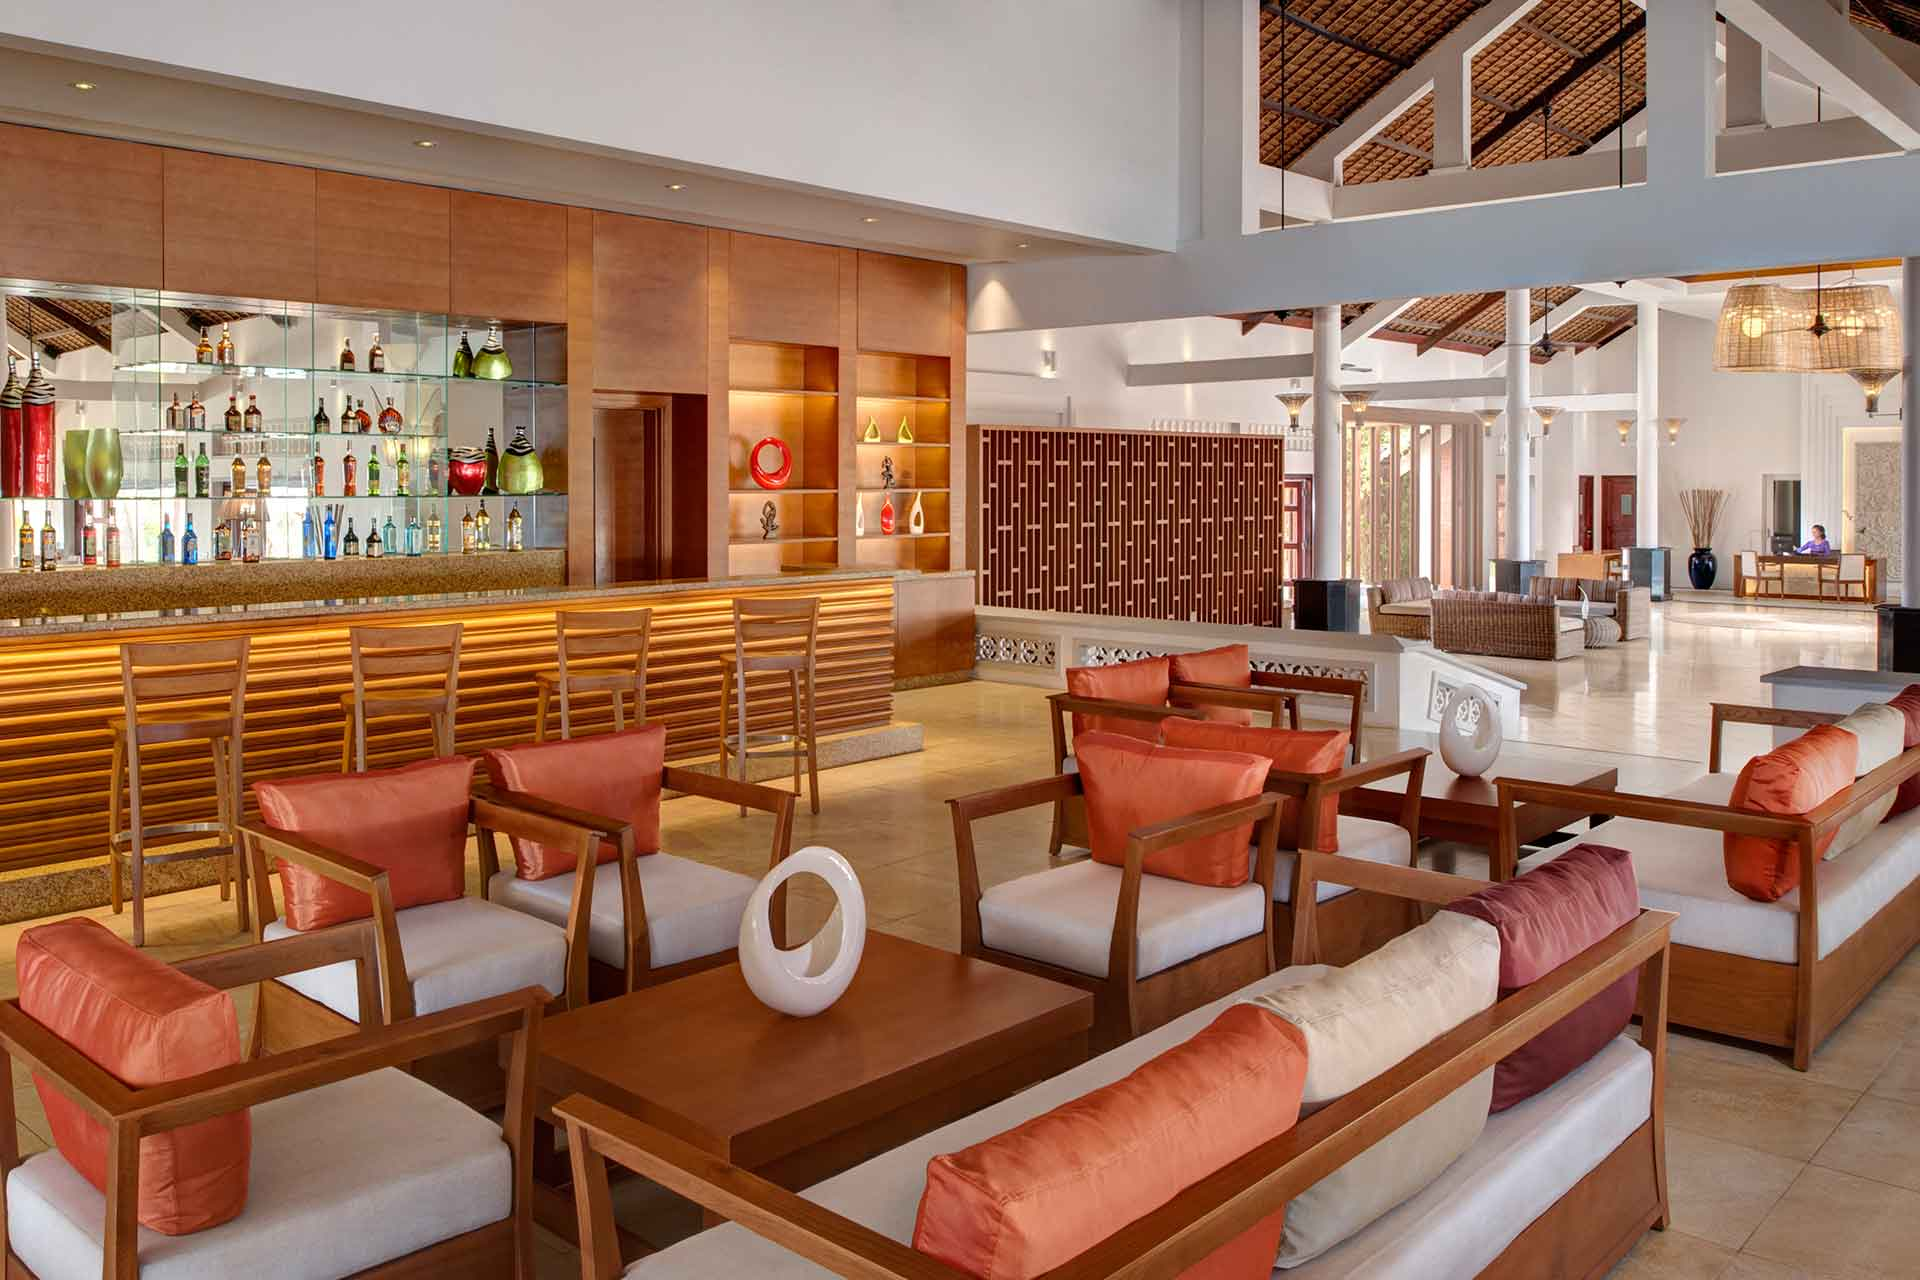 The Trey Lobby bar at AVANI Quy Nhon Resort and spa